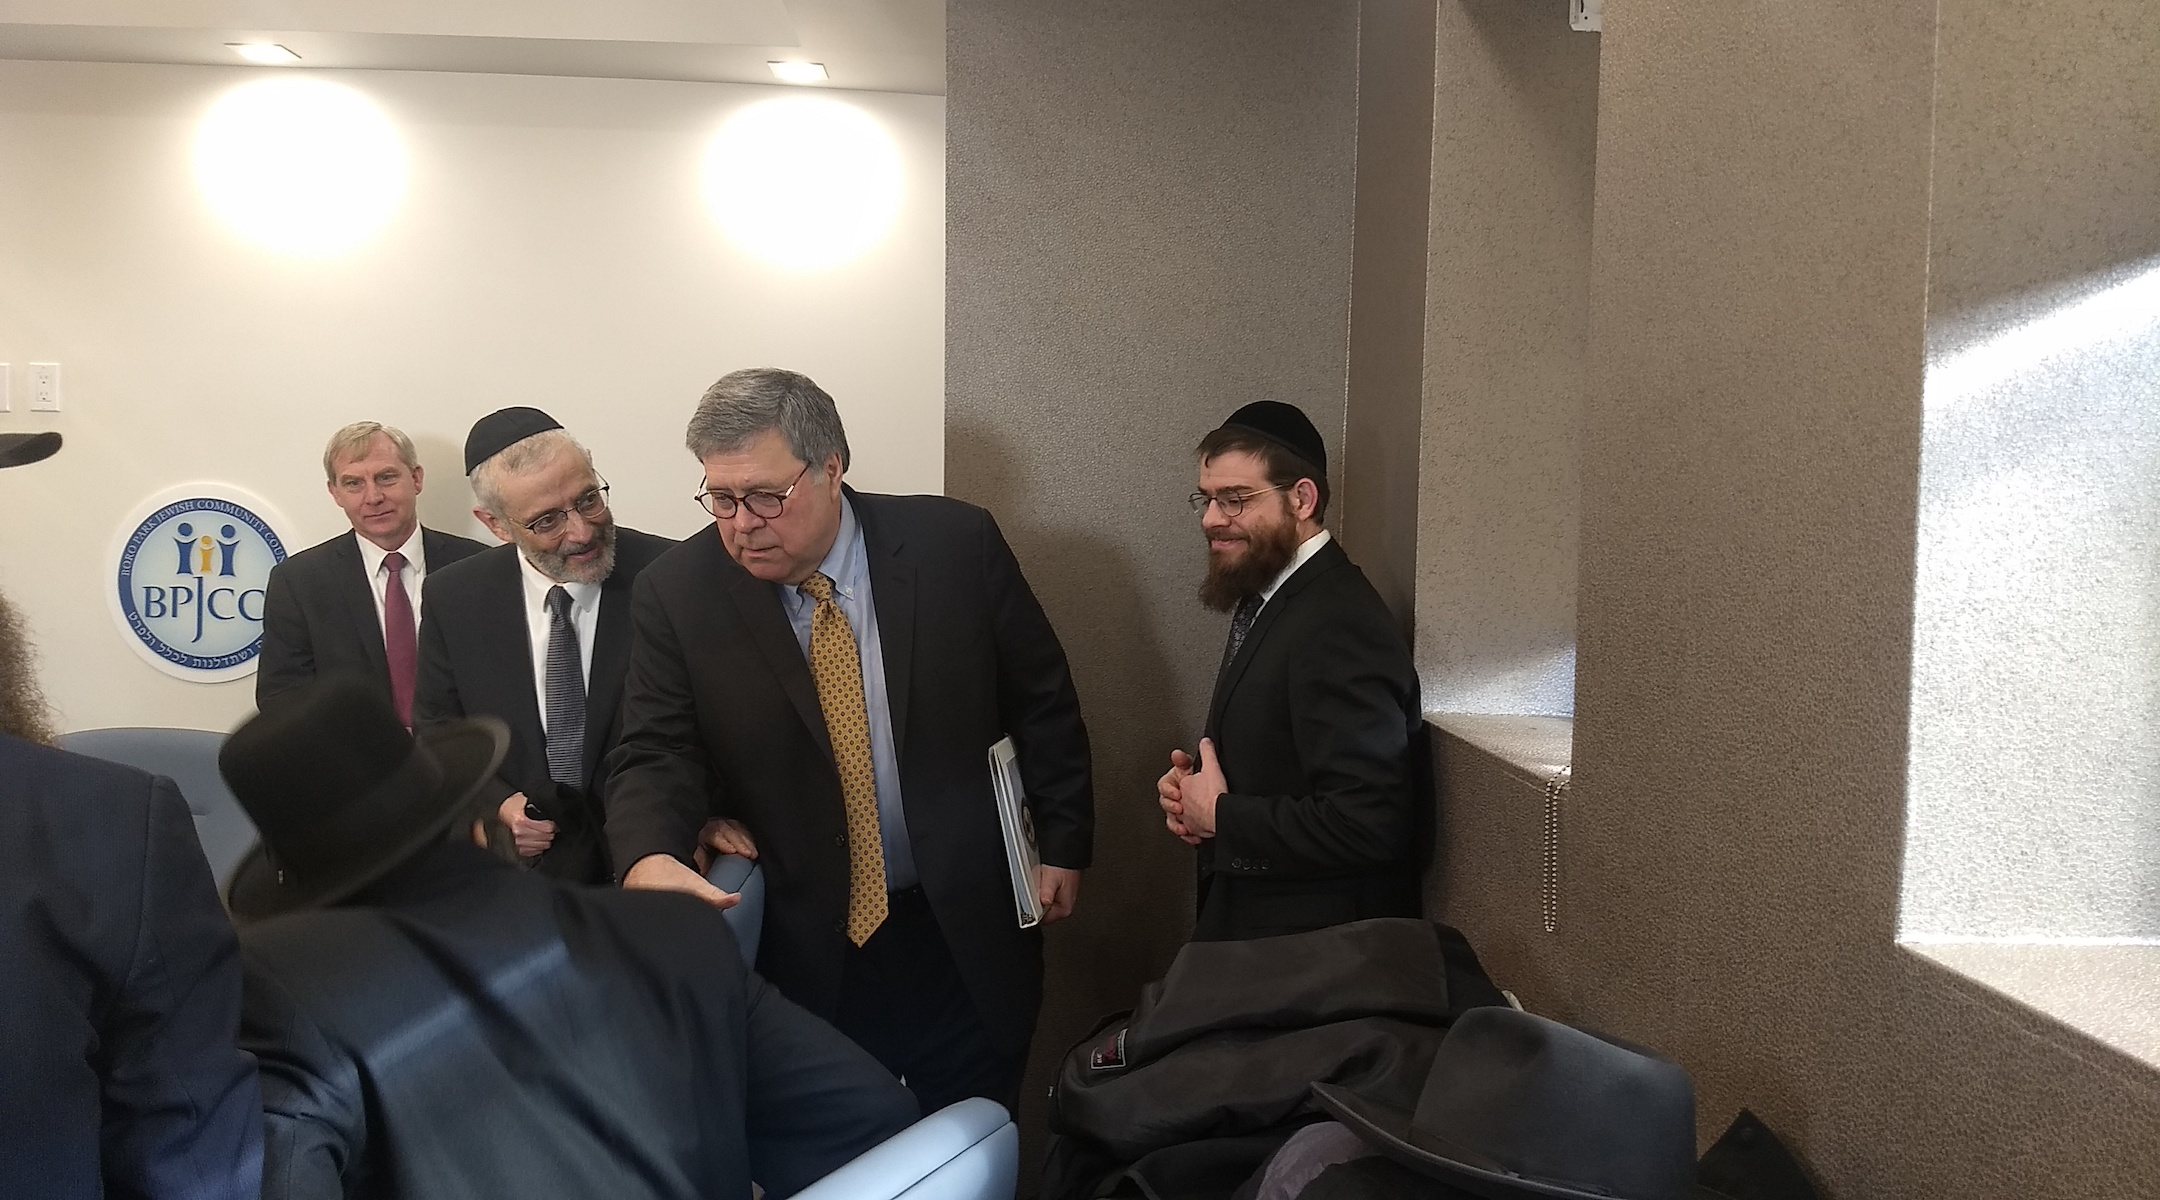 Attorney General William Barr greets Orthodox leaders ahead of meeting with them in Brooklyn on January 28, 2020. (Ben Sales)